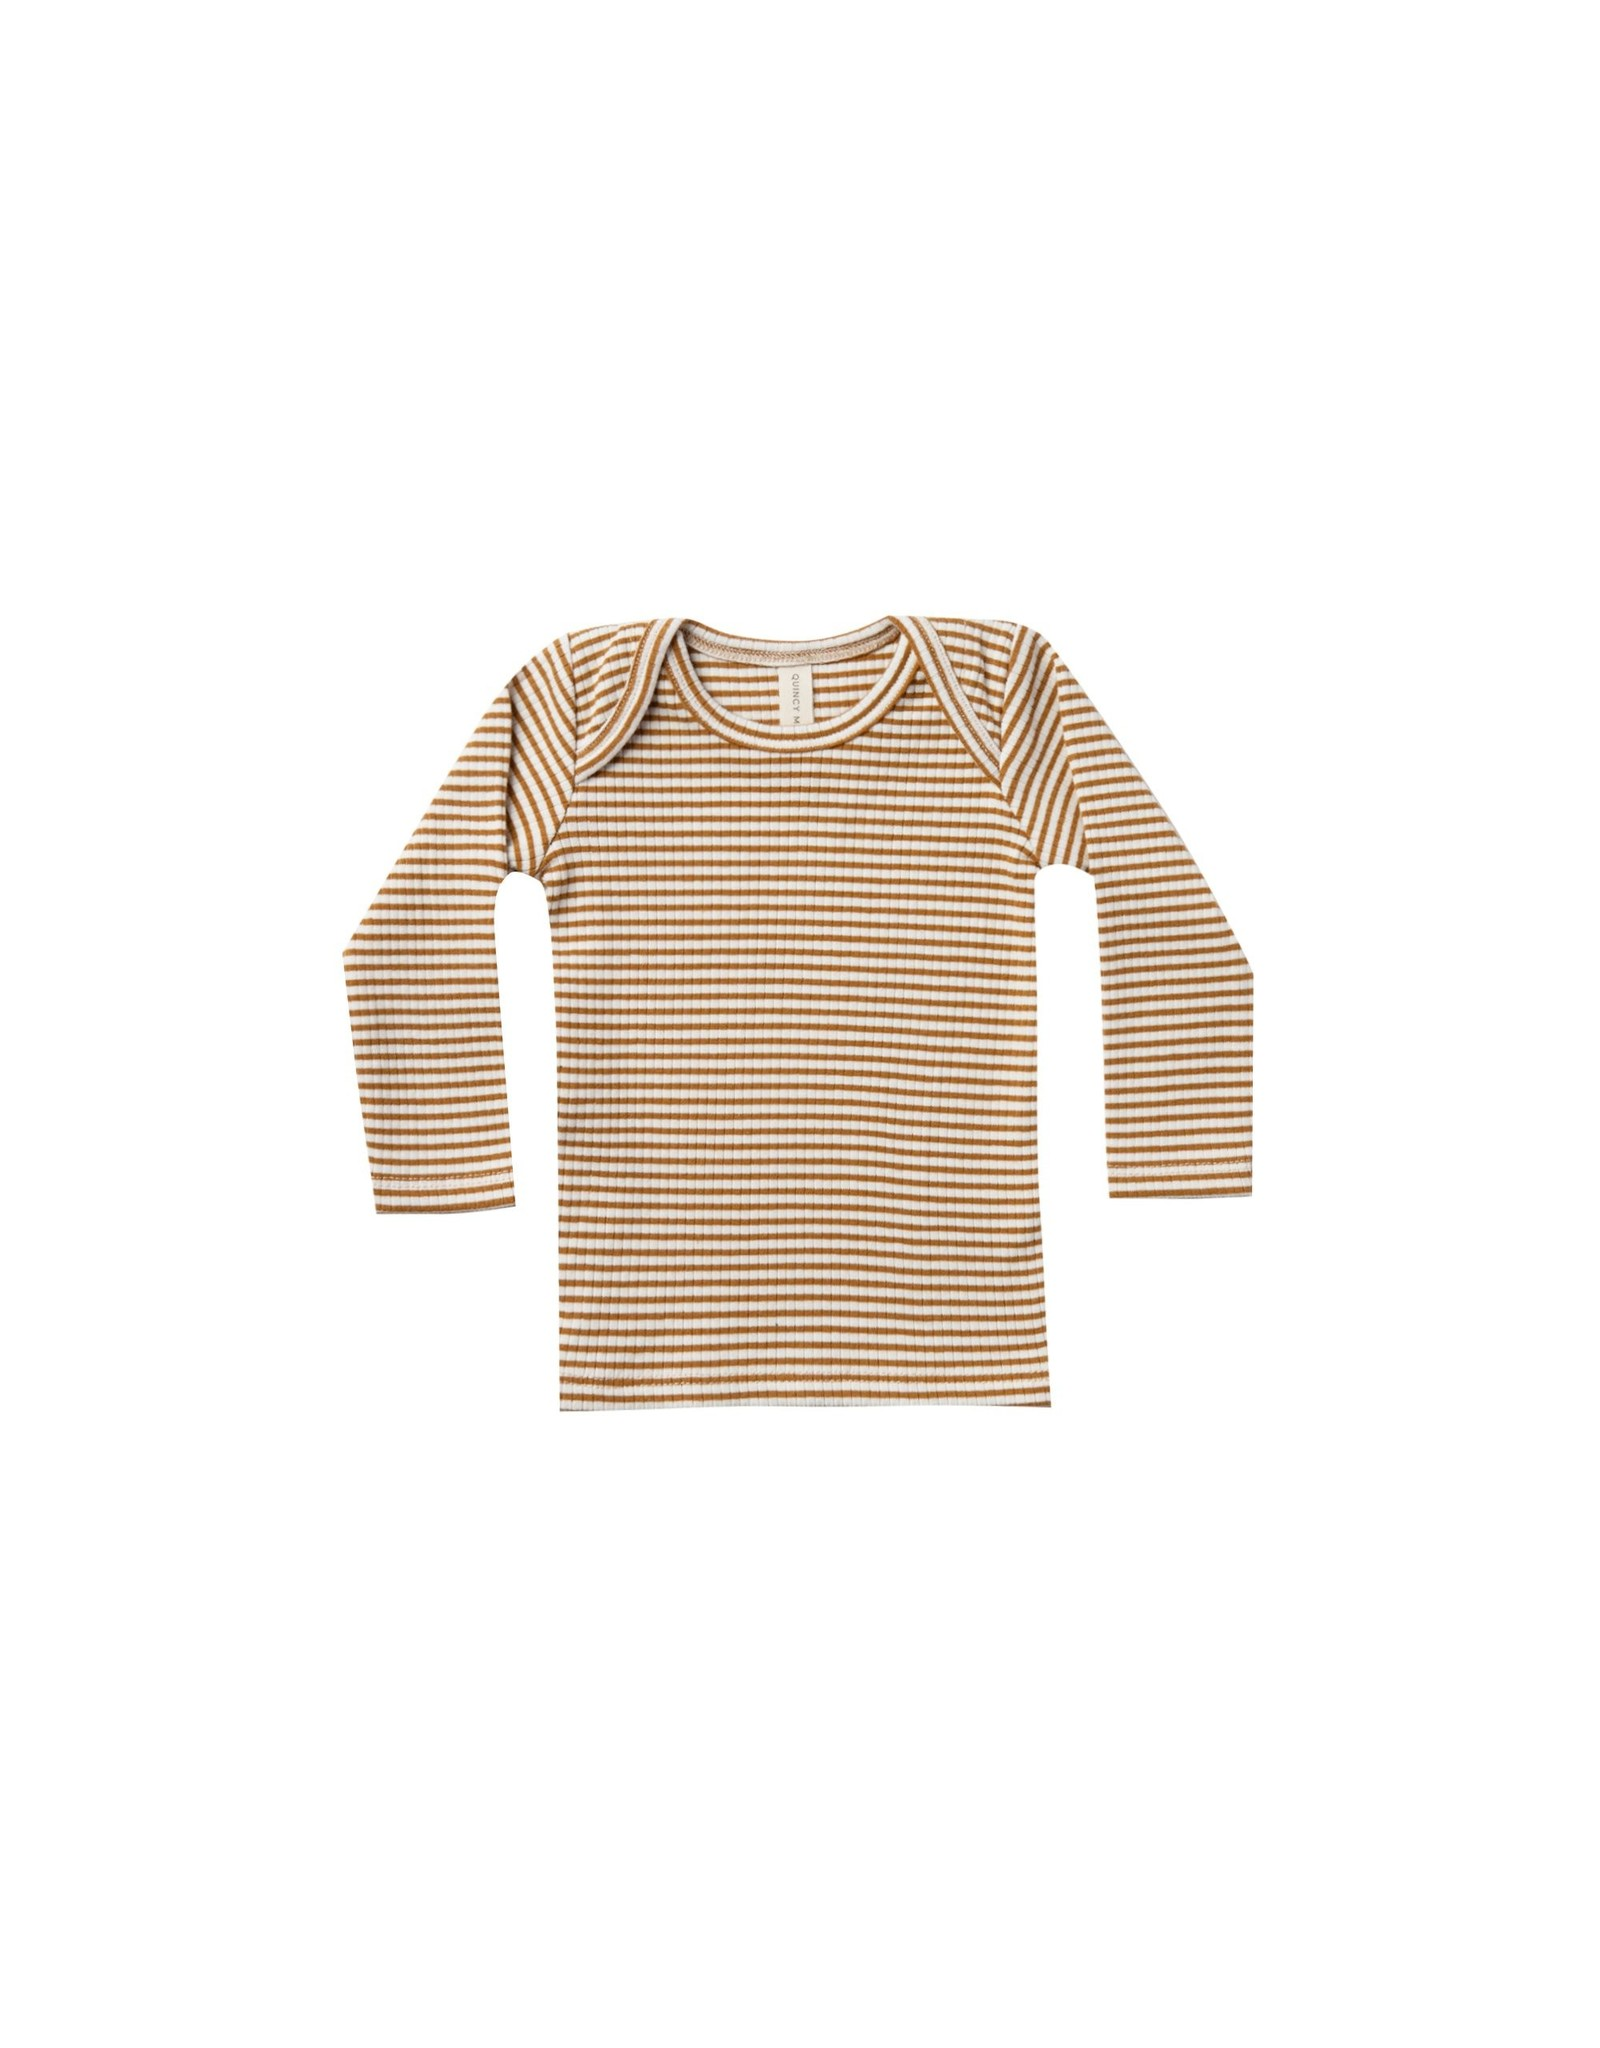 Quincy Mae Ribbed tee